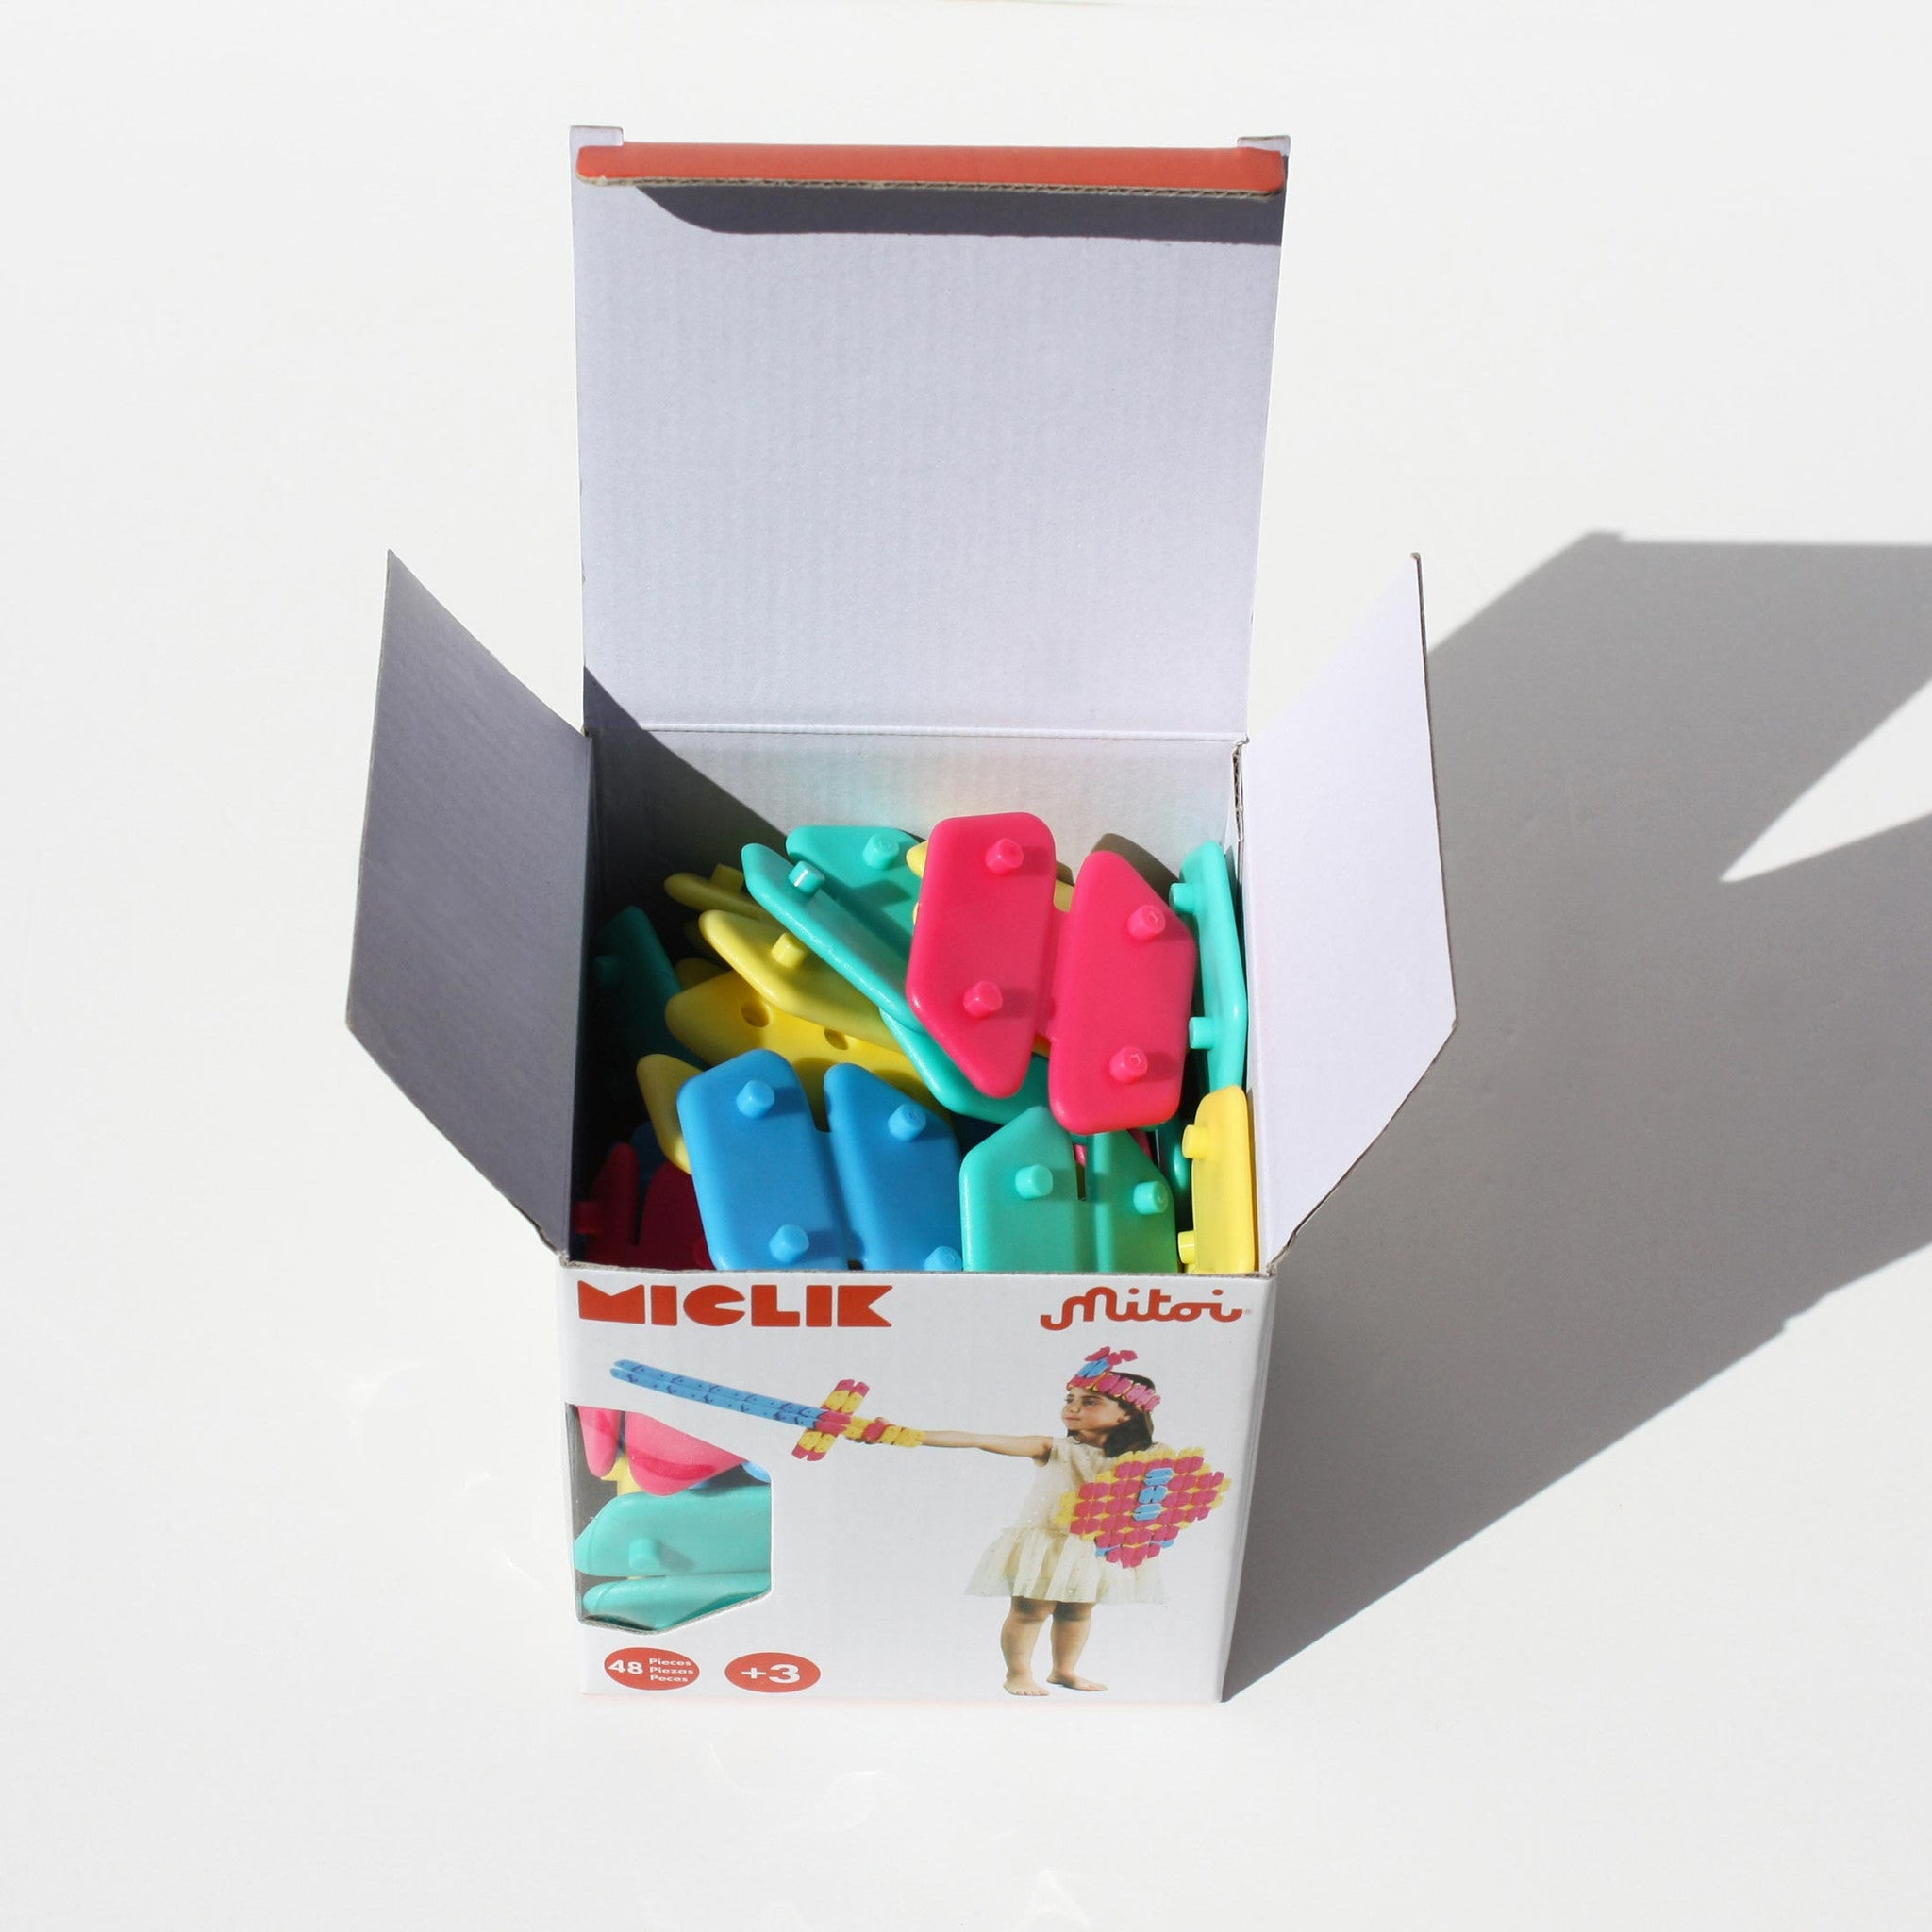 Miclik by Mitoi is a colourful modular construction toy. 48 flat hexagons can bend along a fold, allowing them to be easily snapped together for creative play.